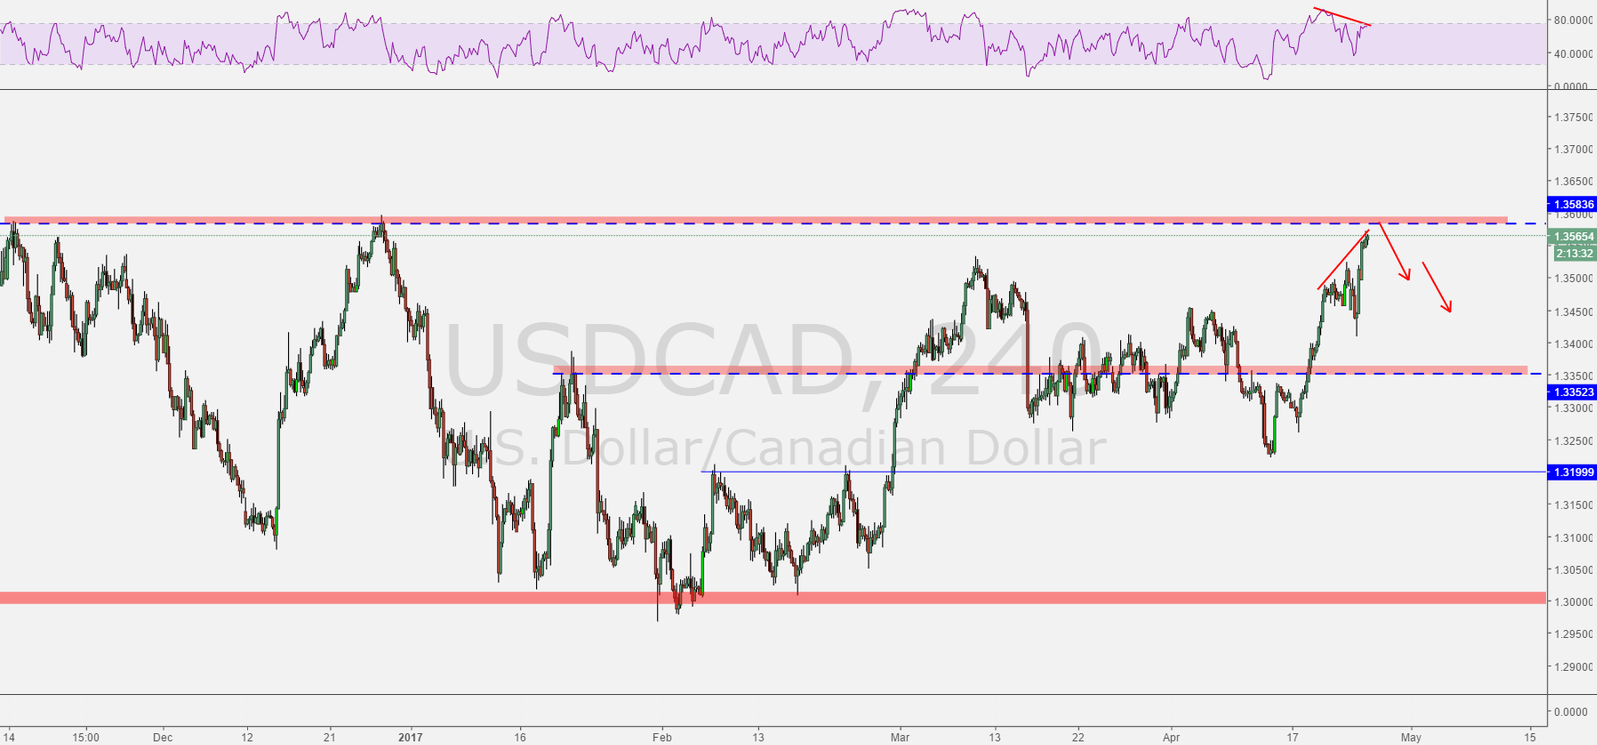 USDCAD at PRZ and major hidden divergence on RSI